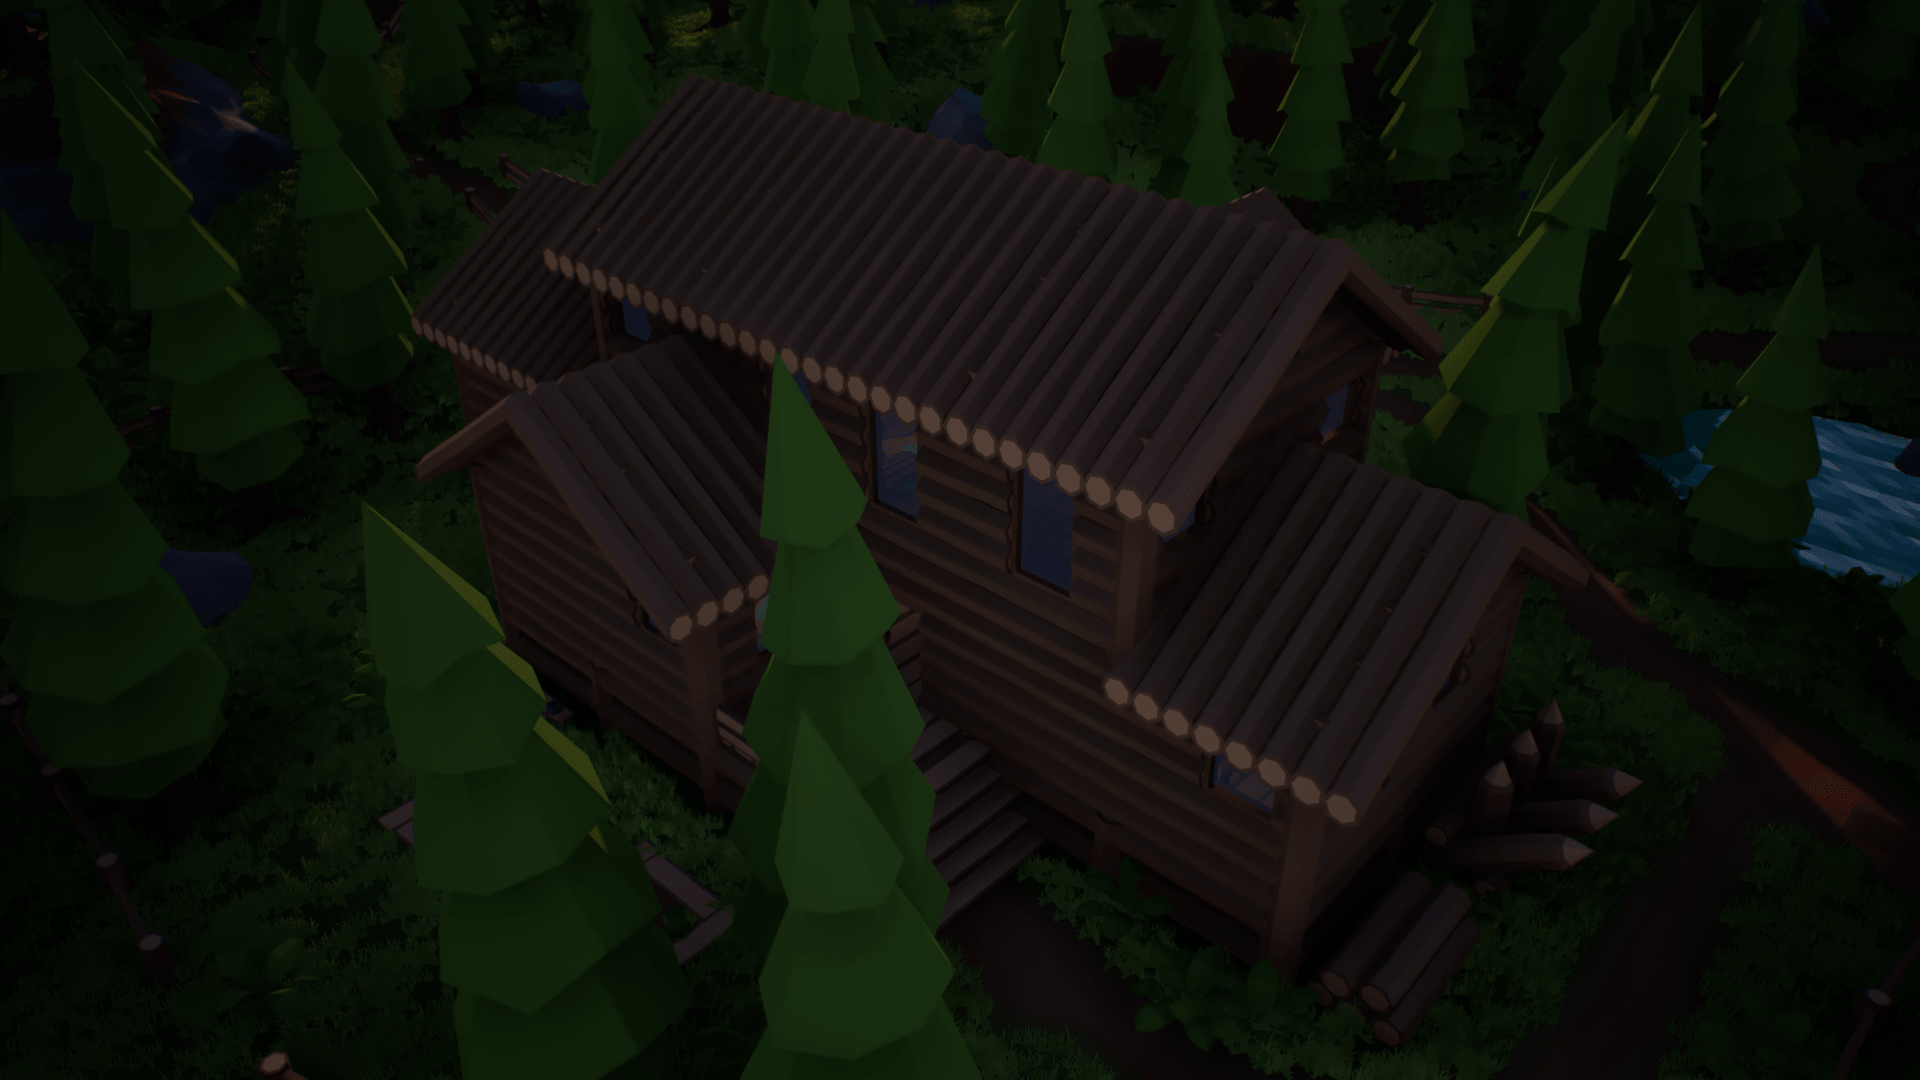 Olbert's Low Poly: Mountain Cabin by Whitman And Olbert in